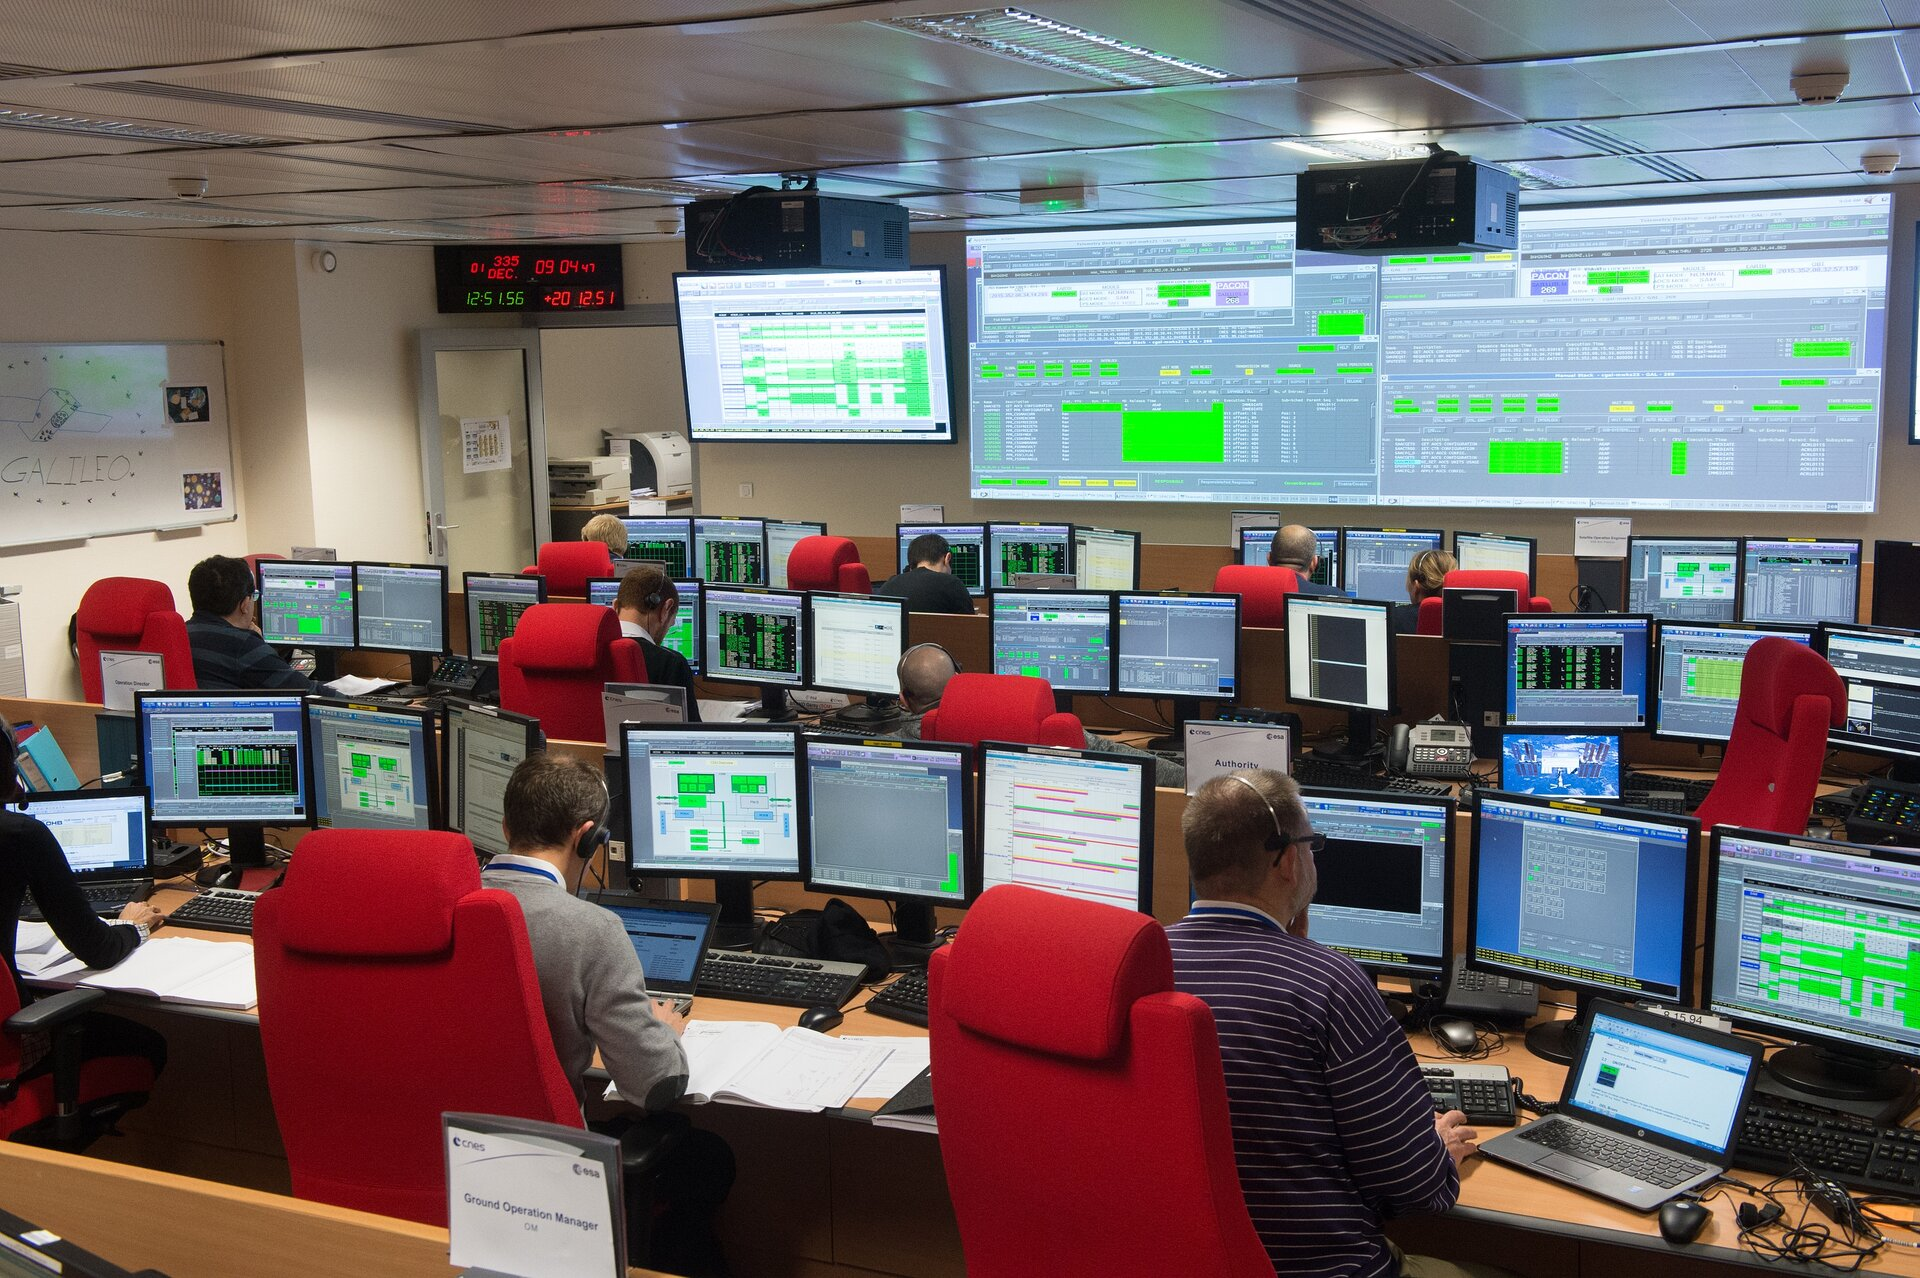 Galileo control room